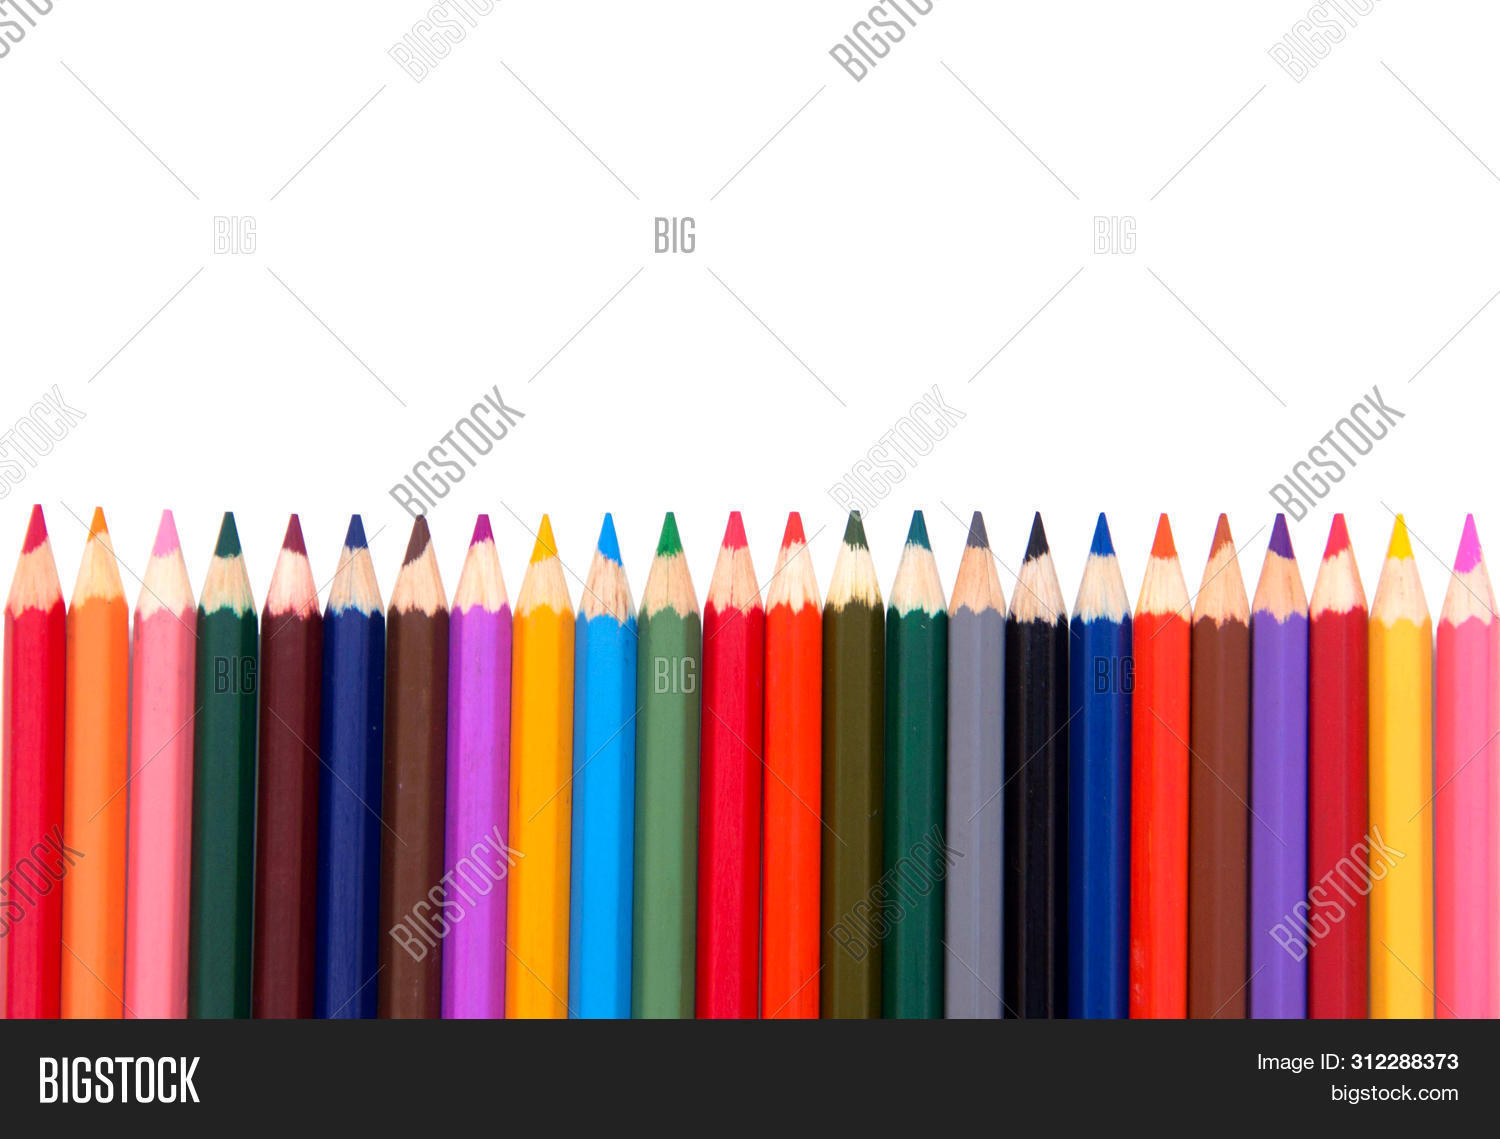 art,background,blue,bright,brown,closeup,college,colored,colorful,colors,colour,concept,crayon,creative,creativity,design,draw,drawing,education,equipment,frame,green,group,instrument,isolated,multicolored,nobody,object,office,orange,paint,palette,pastel,pattern,pen,pencil,pink,rainbow,red,row,school,sharp,spectrum,variation,vibrant,white,wood,wooden,yellow